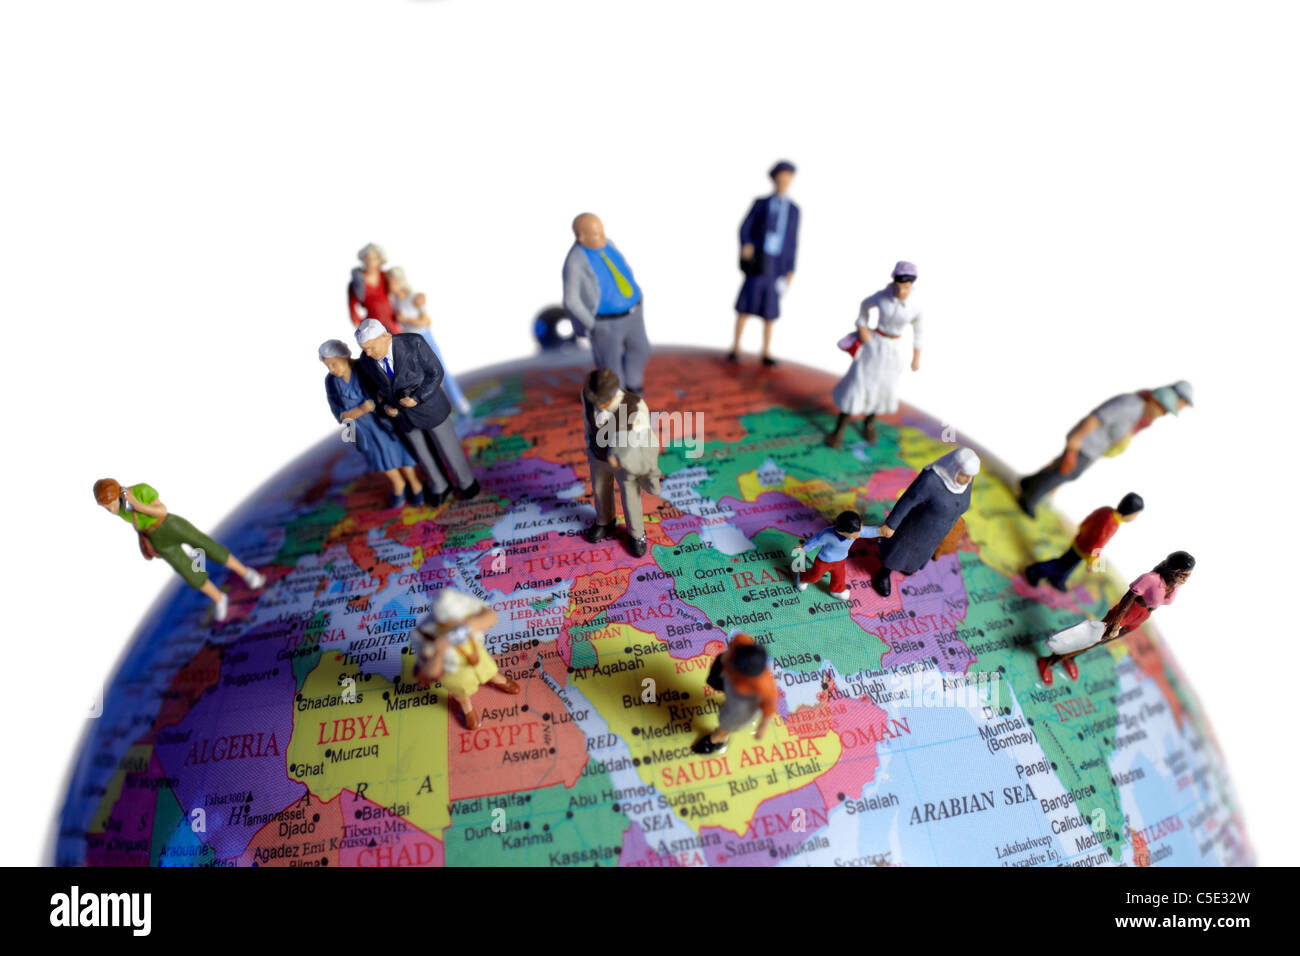 Diverse human miniatures on the globe against white background - Stock Image